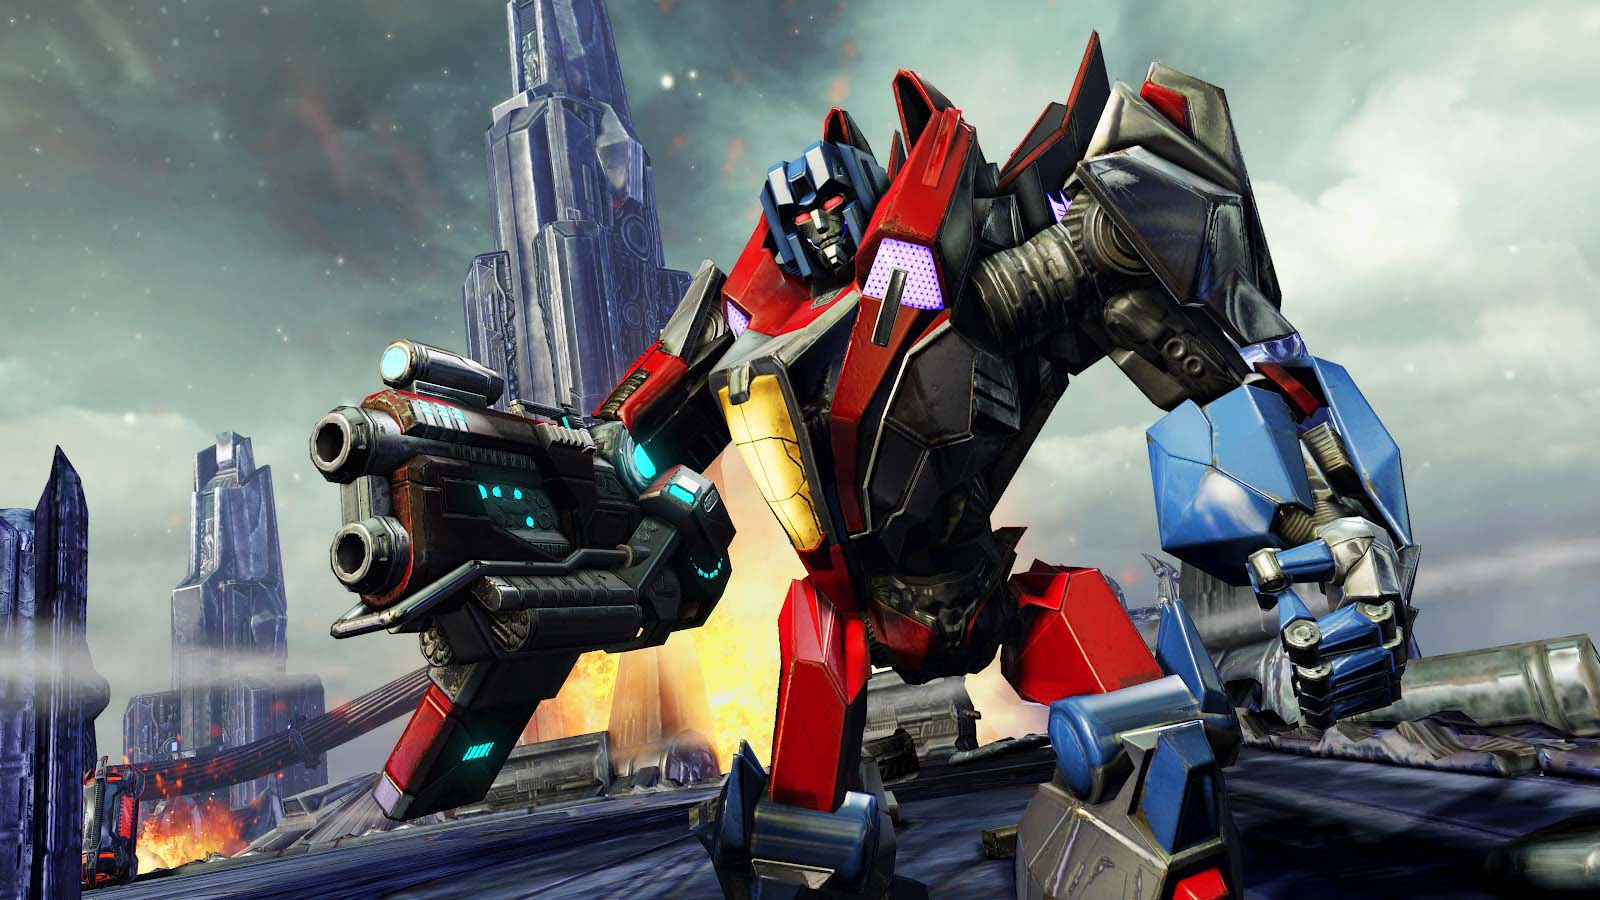 Transformers fall of cybertron Awesome wallpaper in HD 1600x900